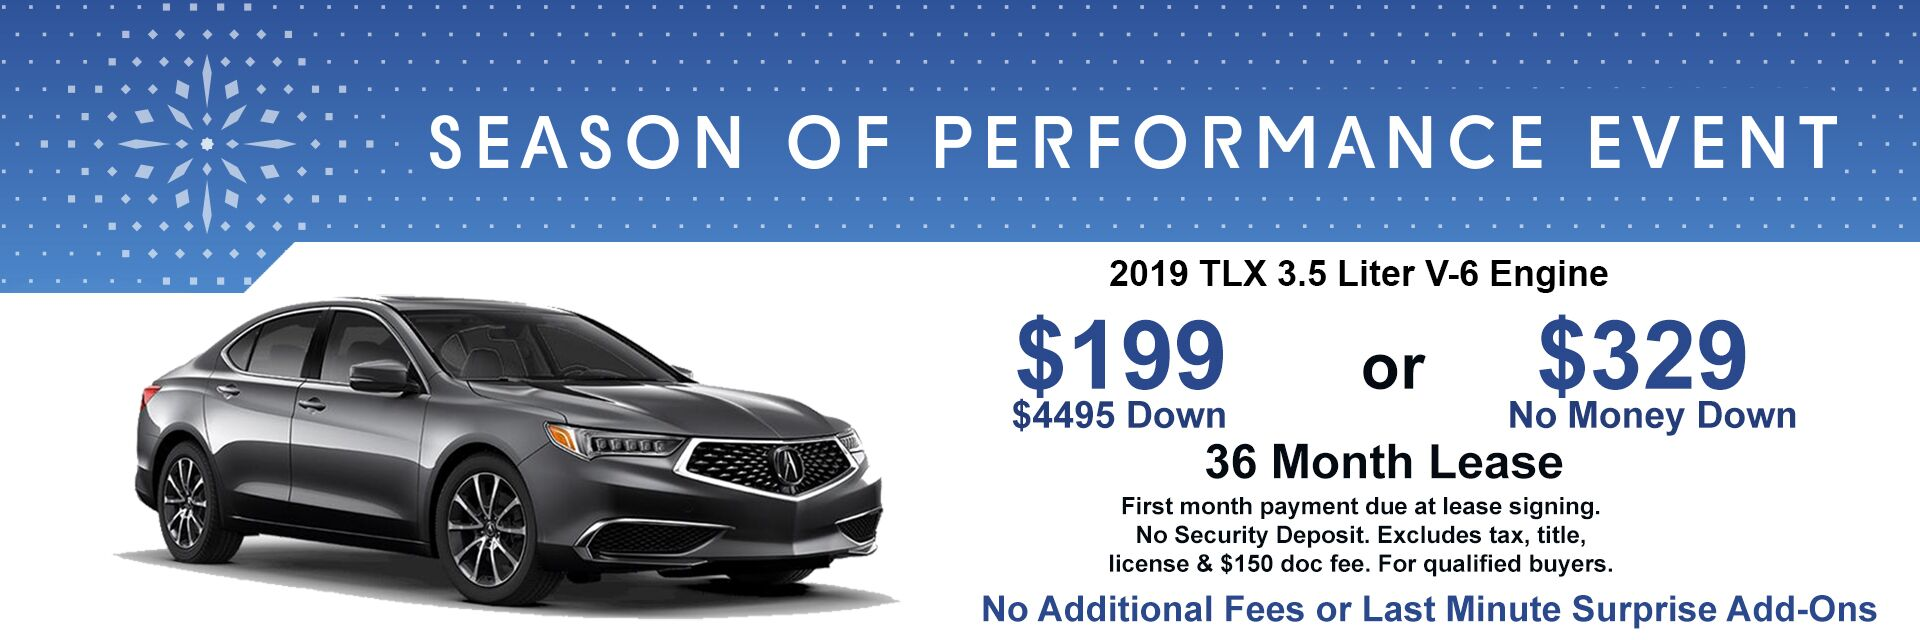 2019 TLX Lease Special